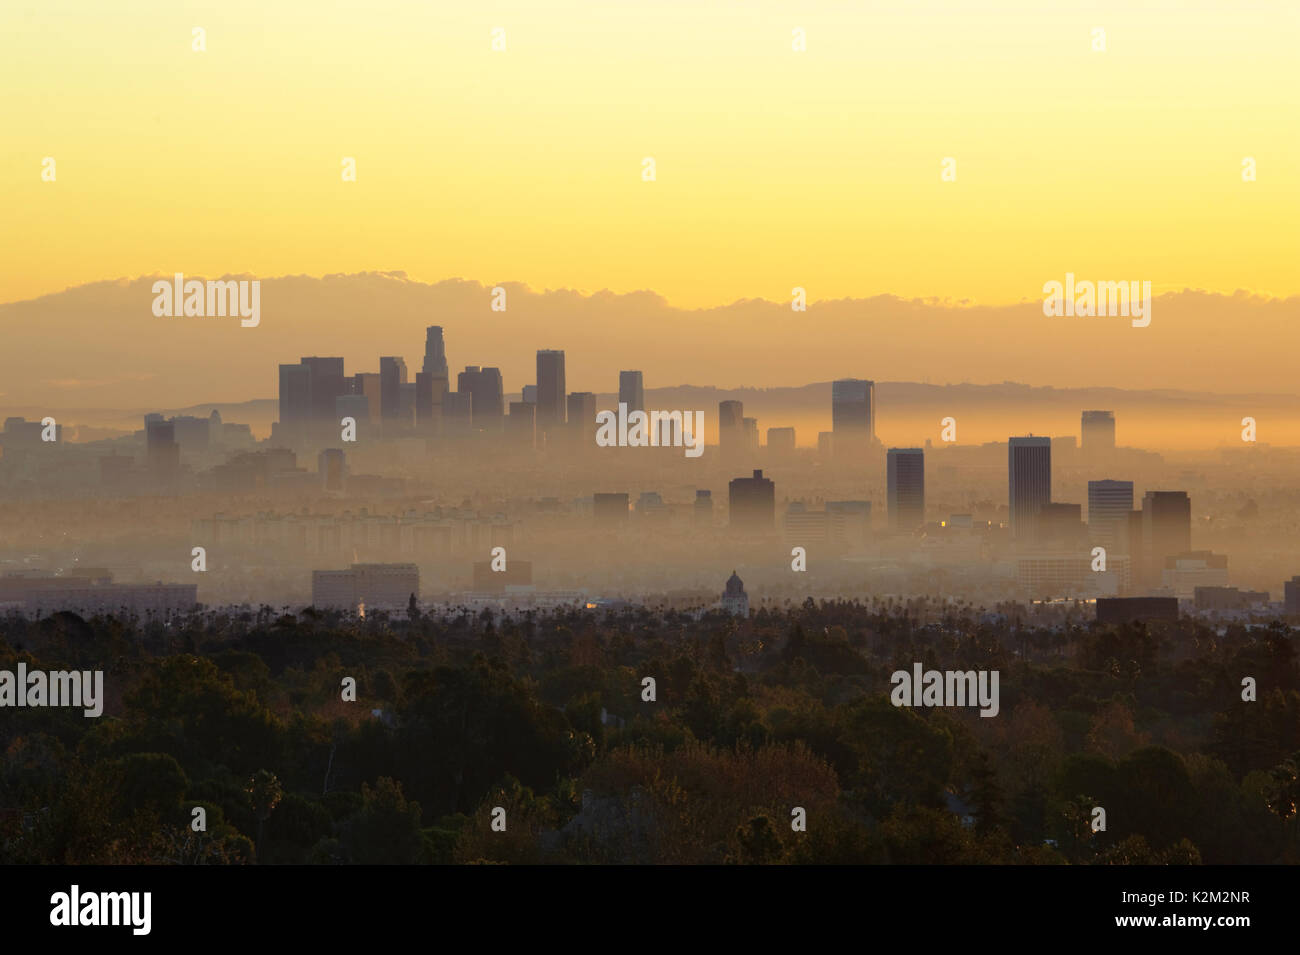 Downtown los angeles in a haze stock photo royalty free image downtown los angeles in a haze sciox Gallery